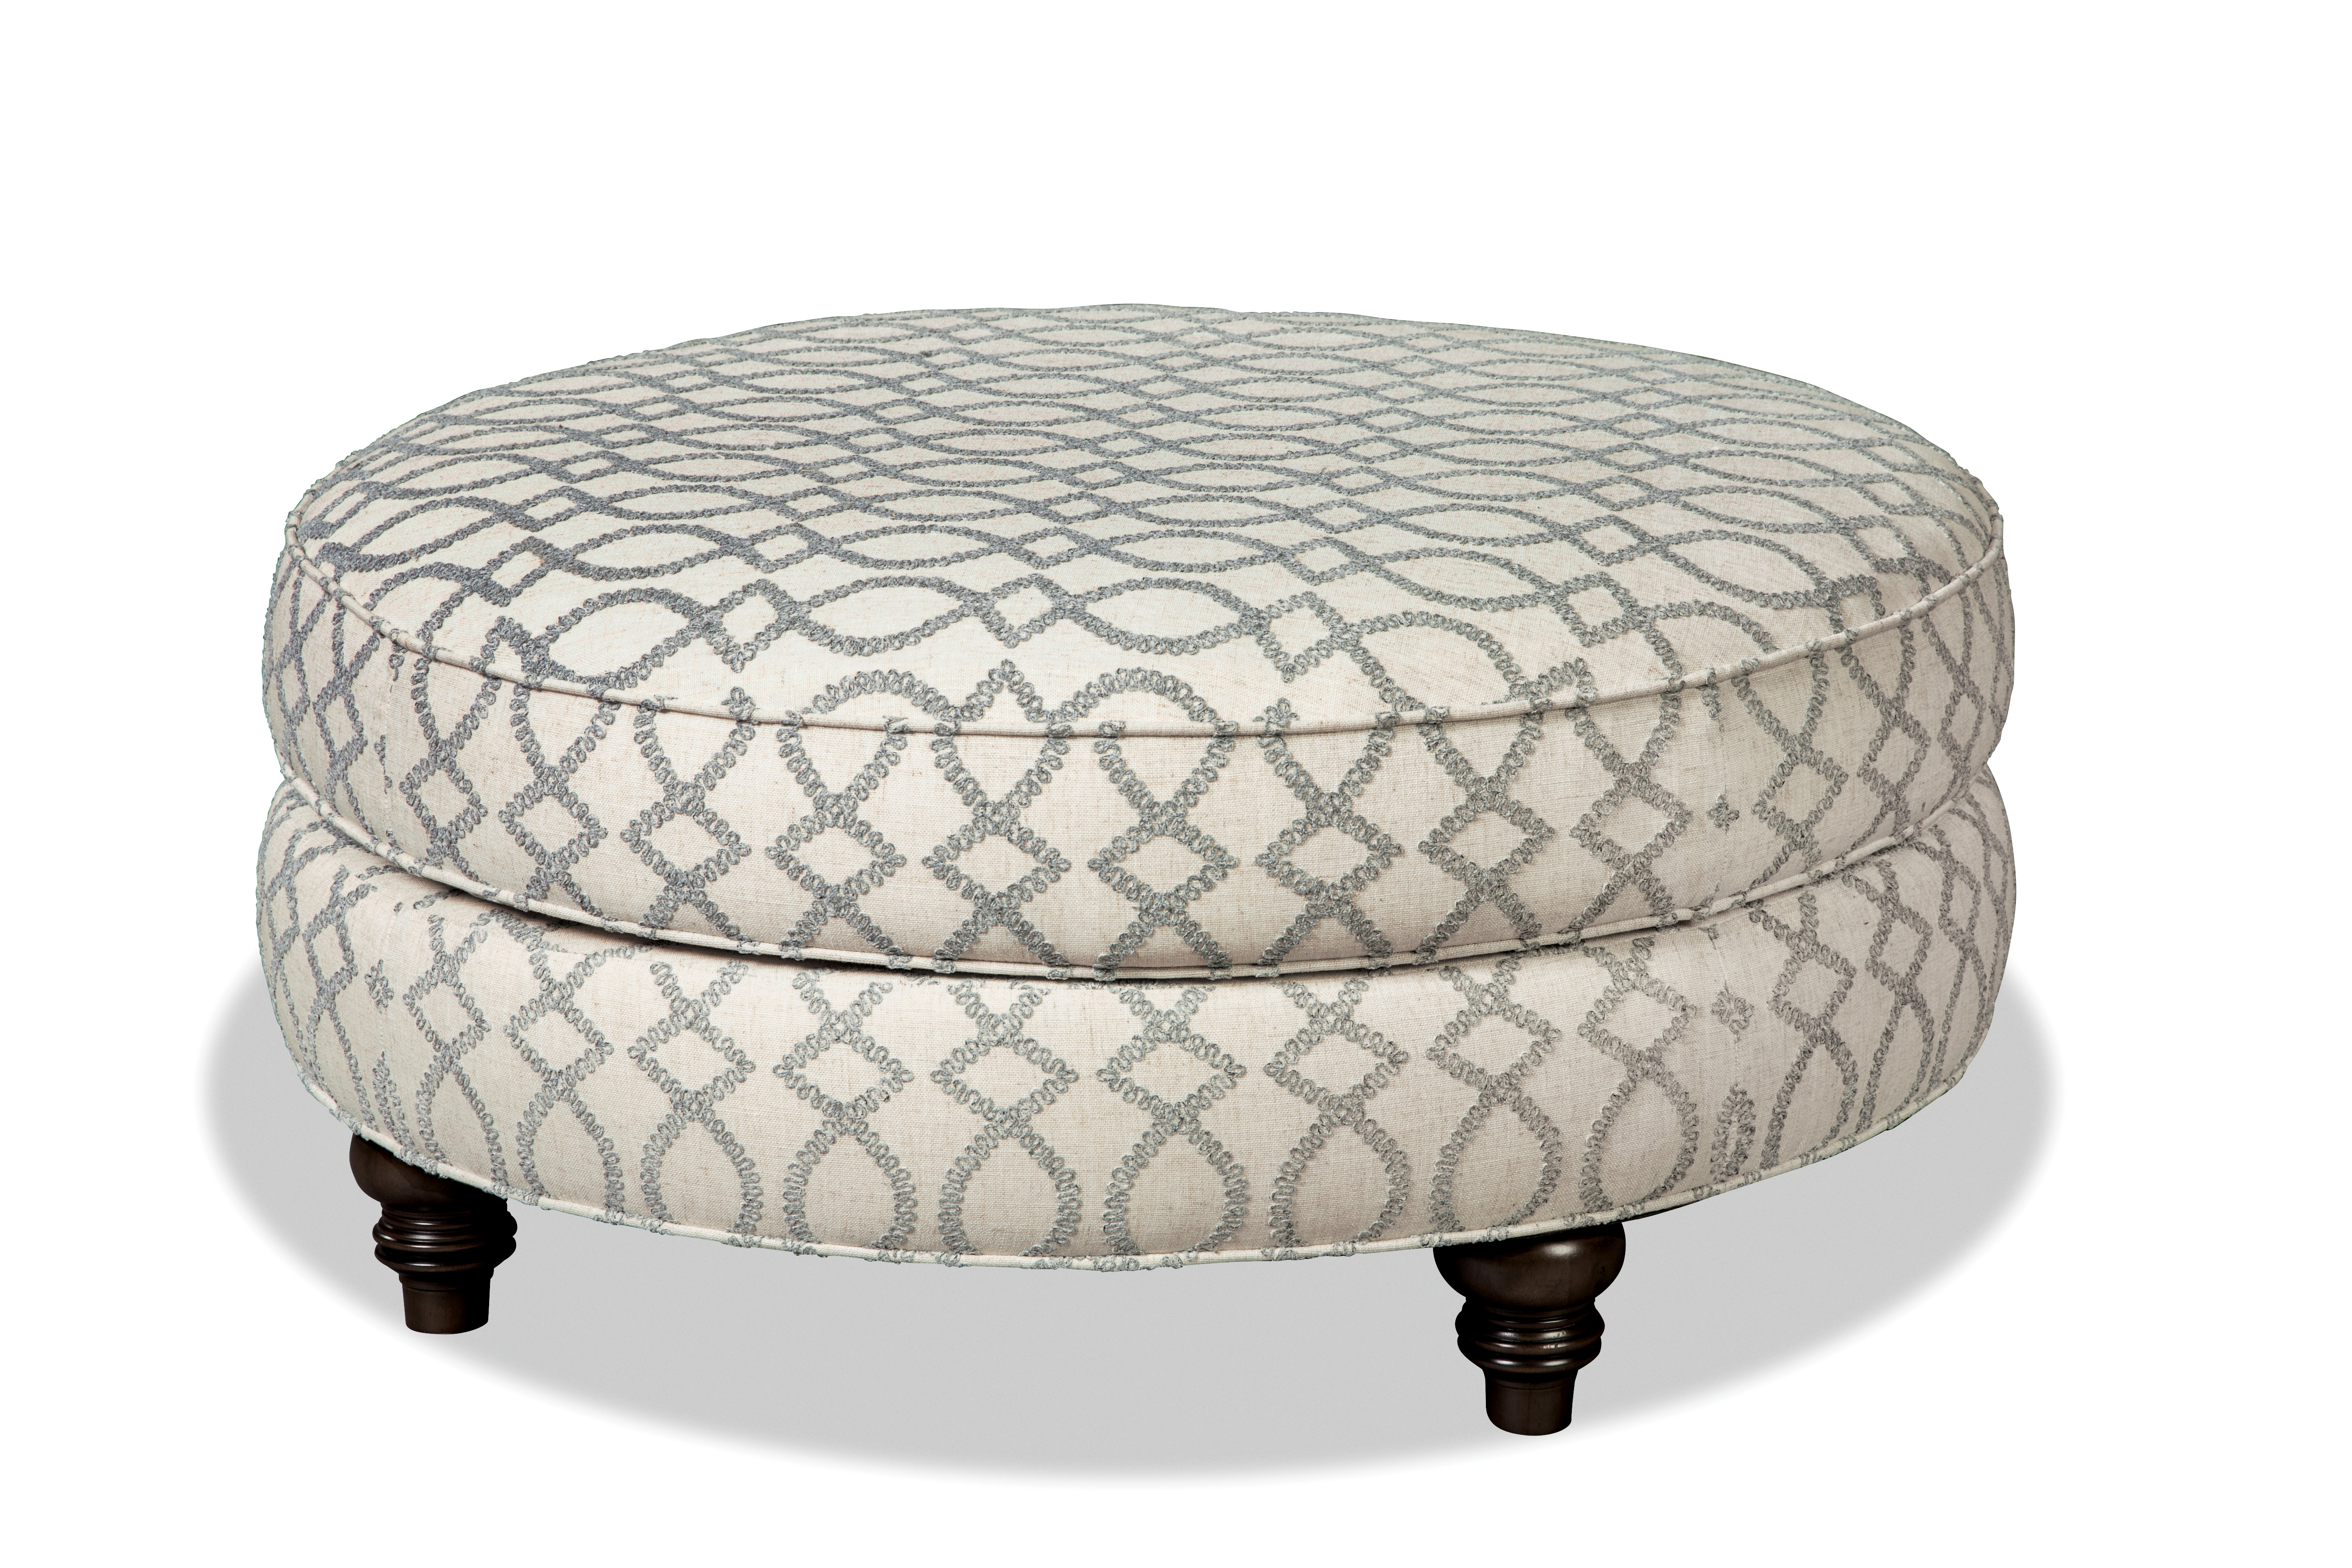 011500 Cocktail Ottoman by Craftmaster at Esprit Decor Home Furnishings